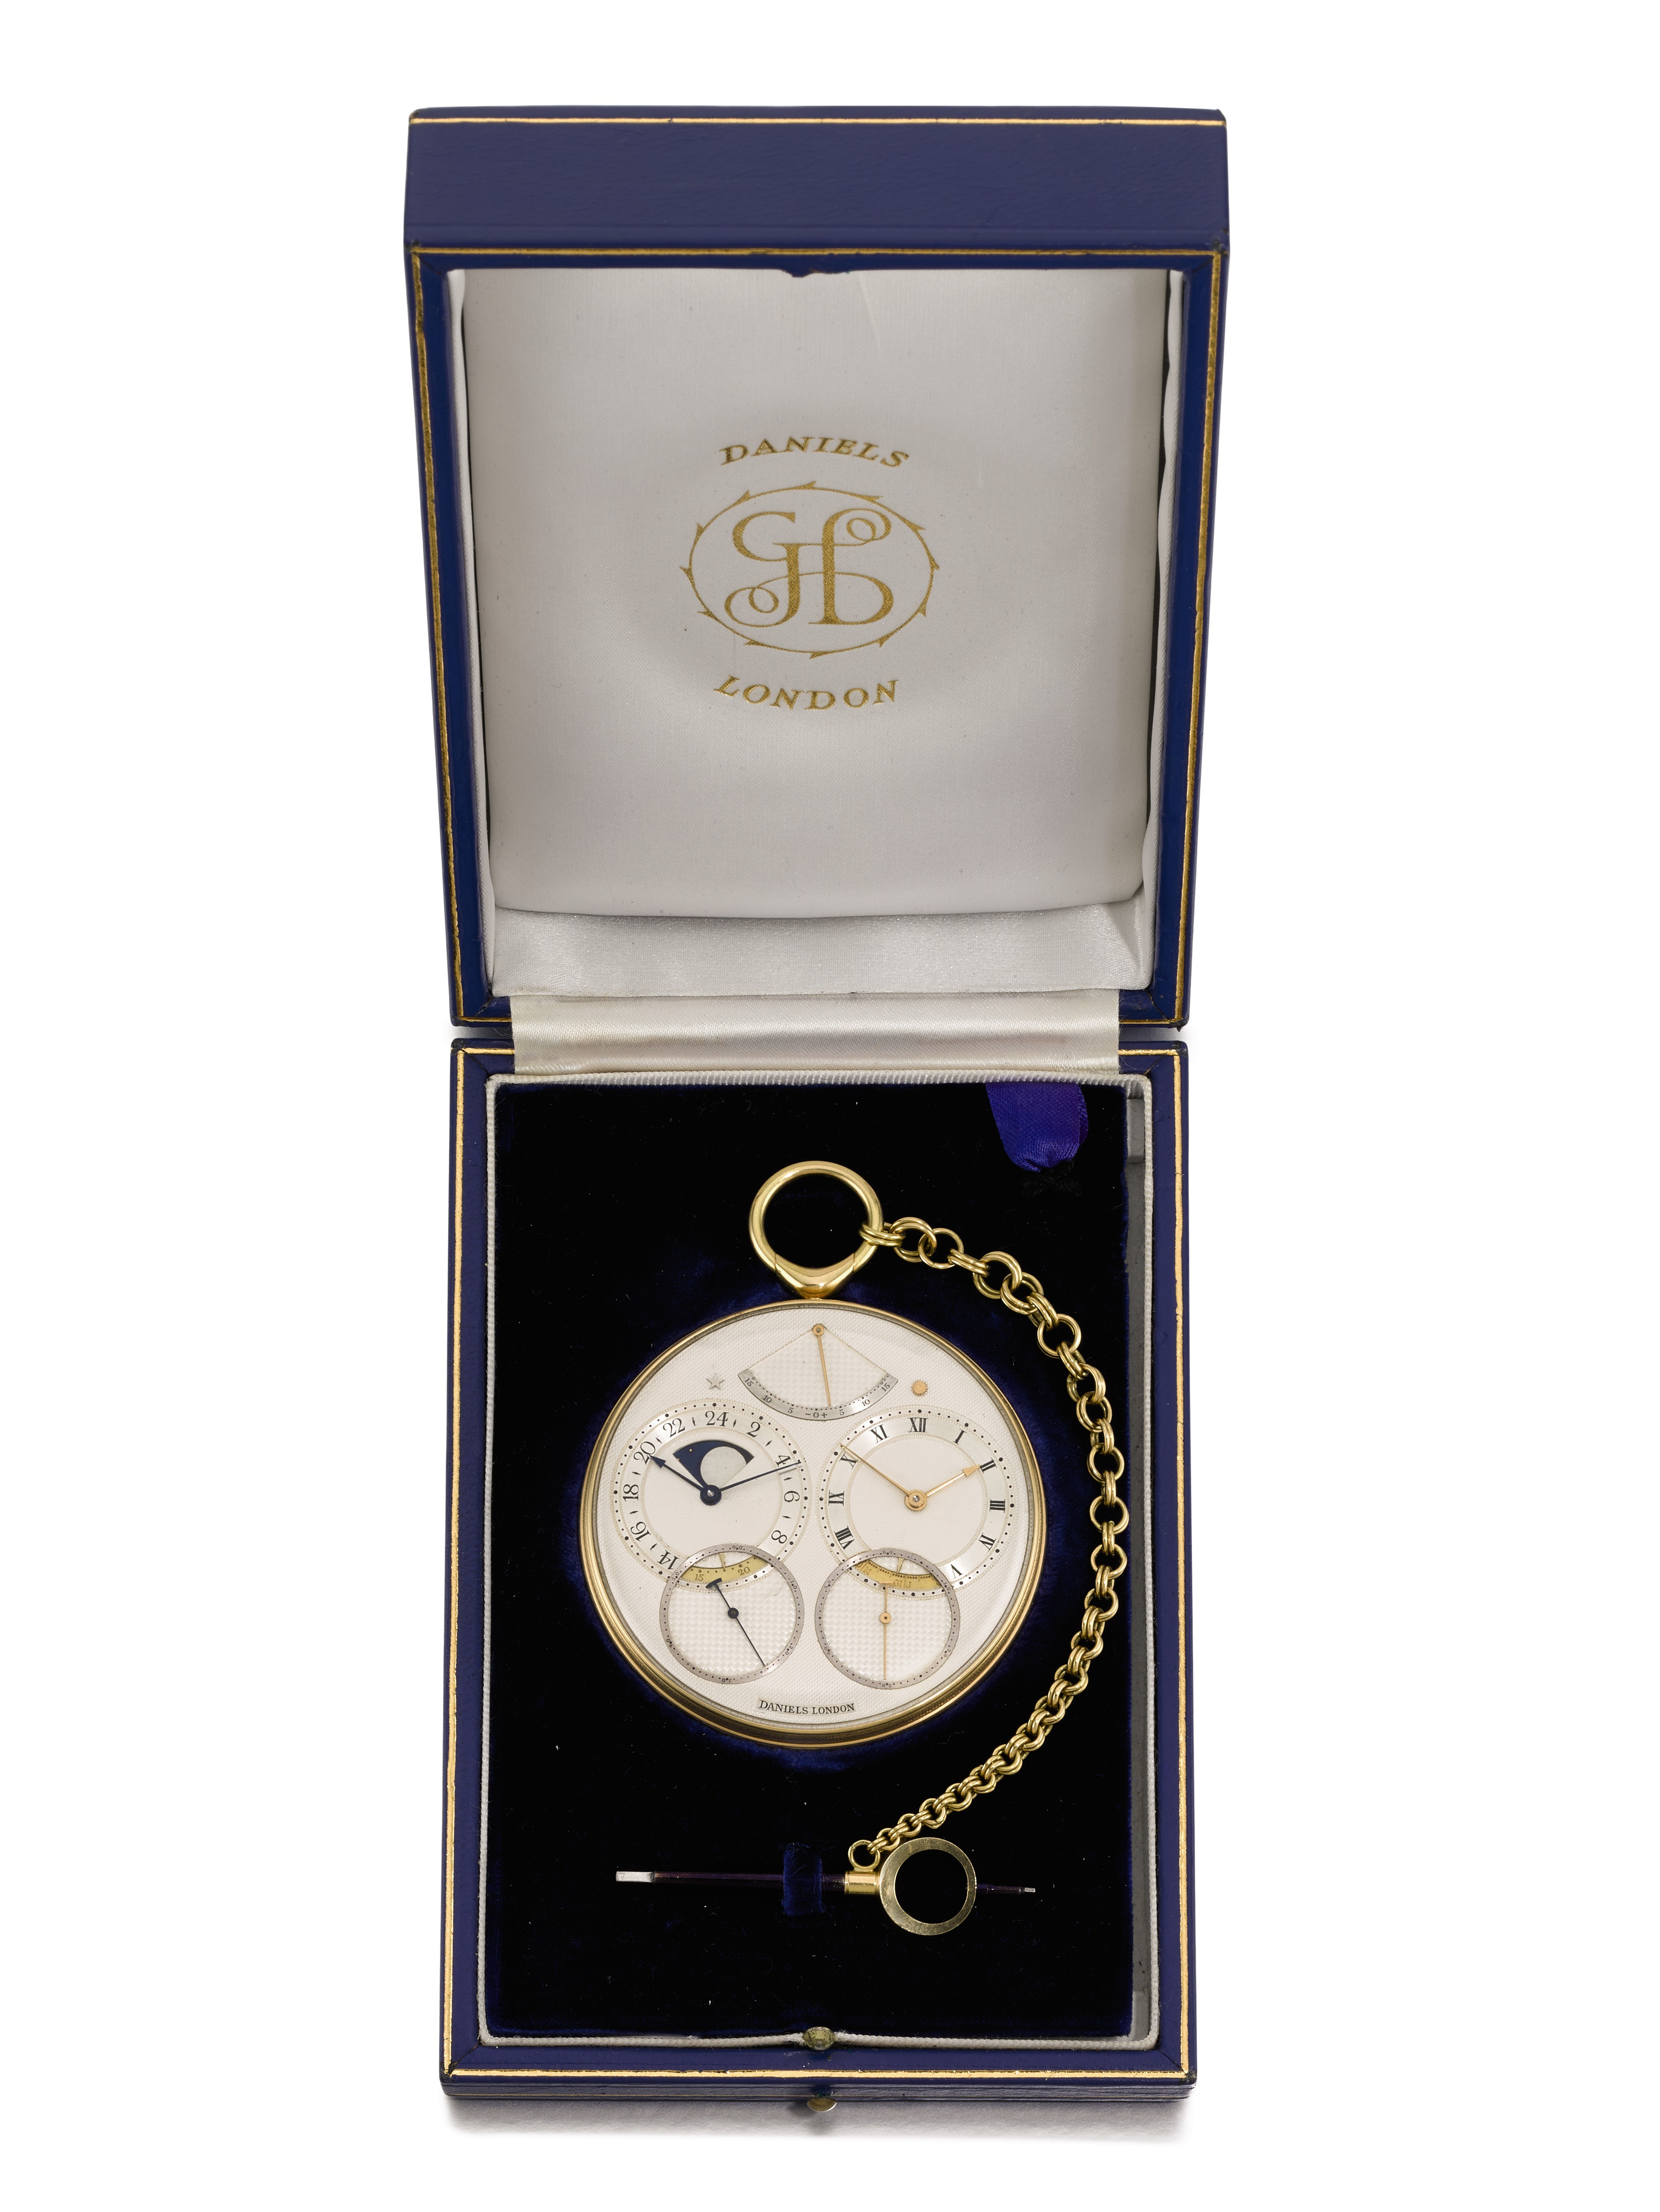 George Daniels Space Traveller 1 pocket watch, inspired by the Apollo 11 moon landing, fetches a record US$4.6 million at auction